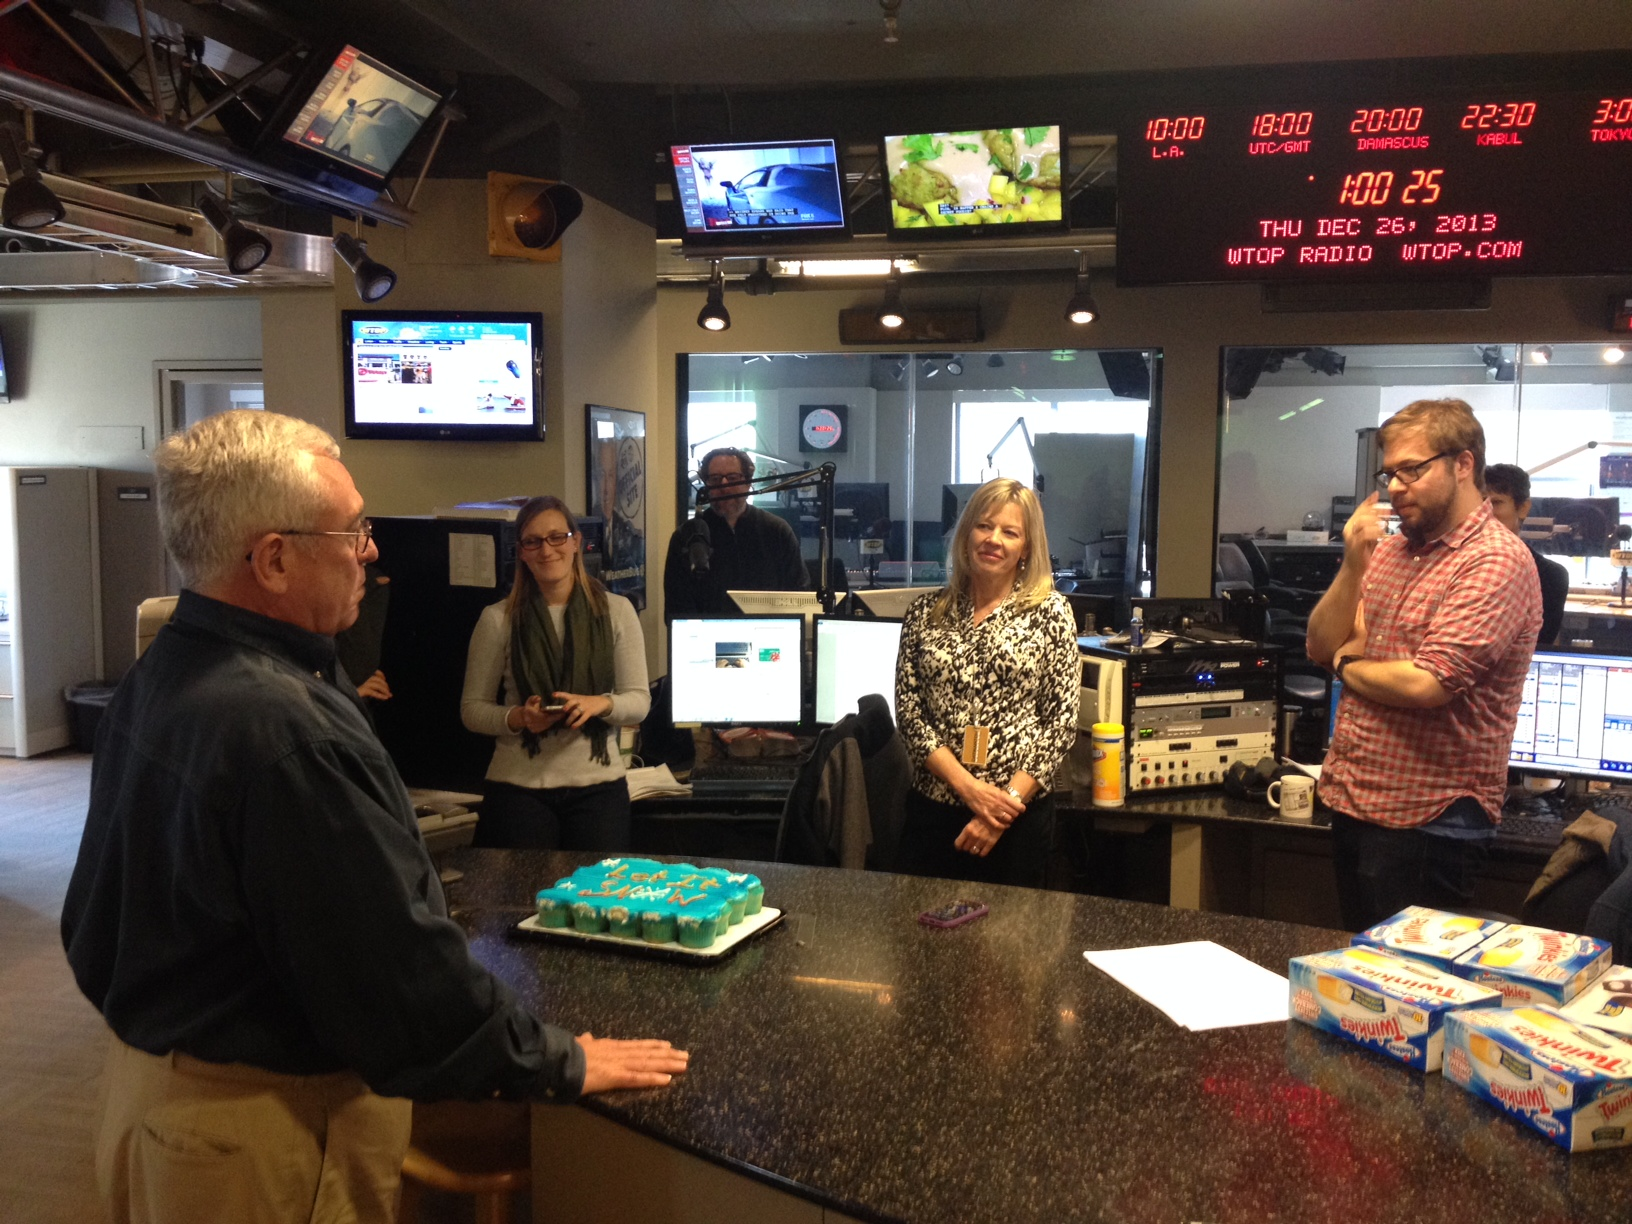 End of an era: Jim Farley's last day at WTOP